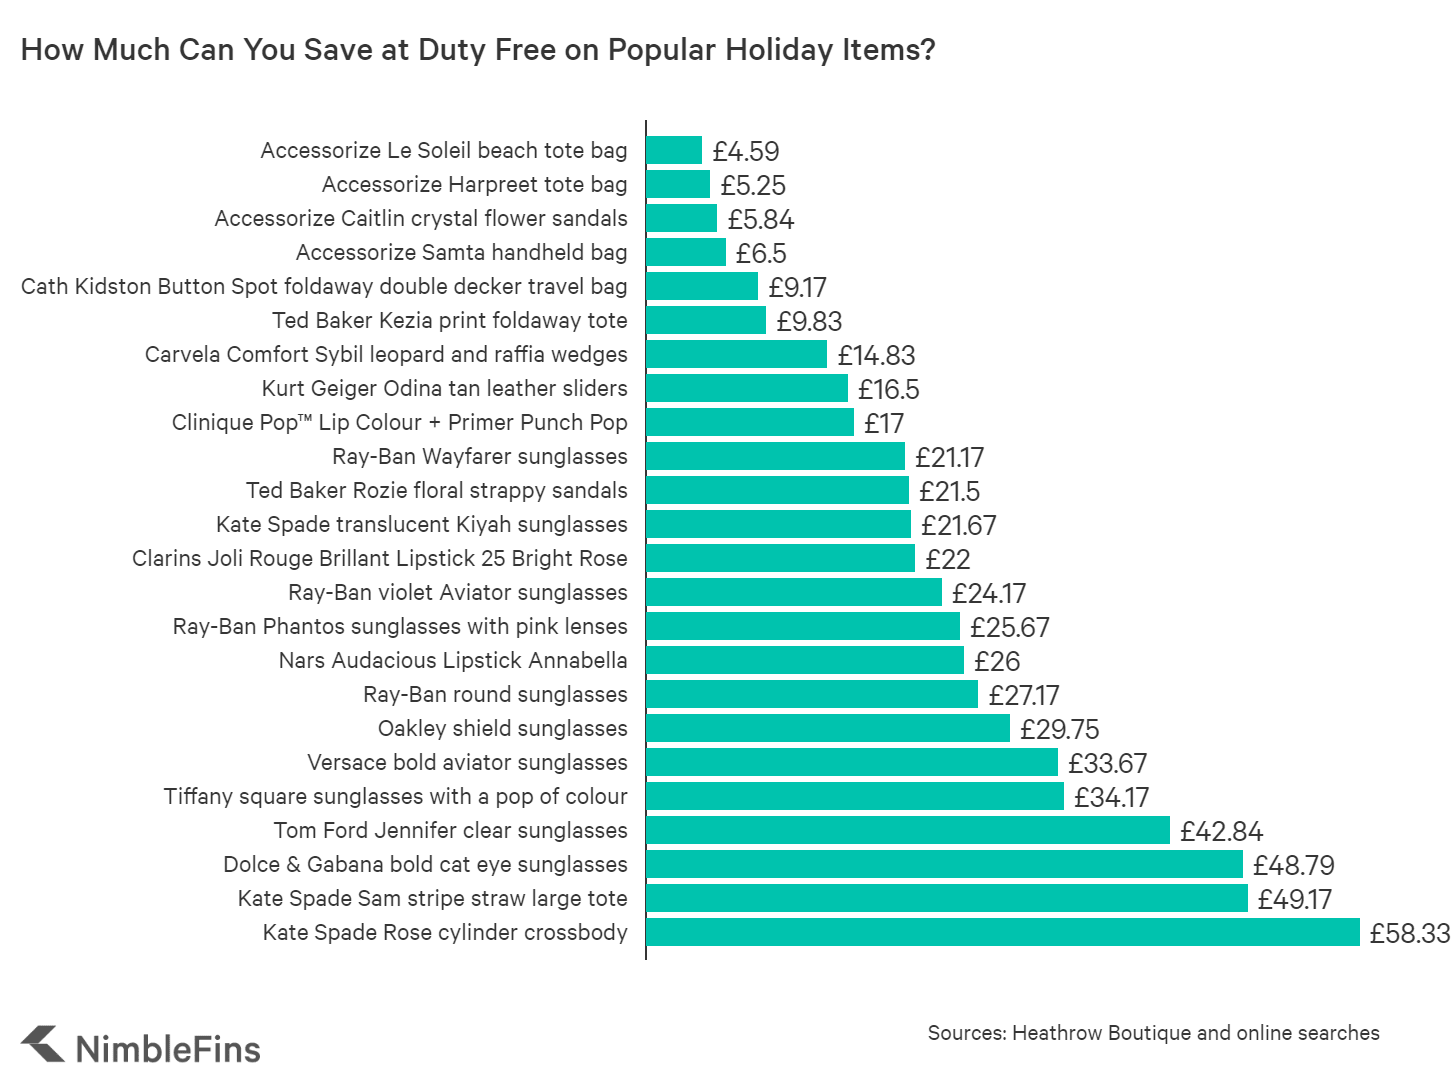 chart showing savings on holiday items from duty free